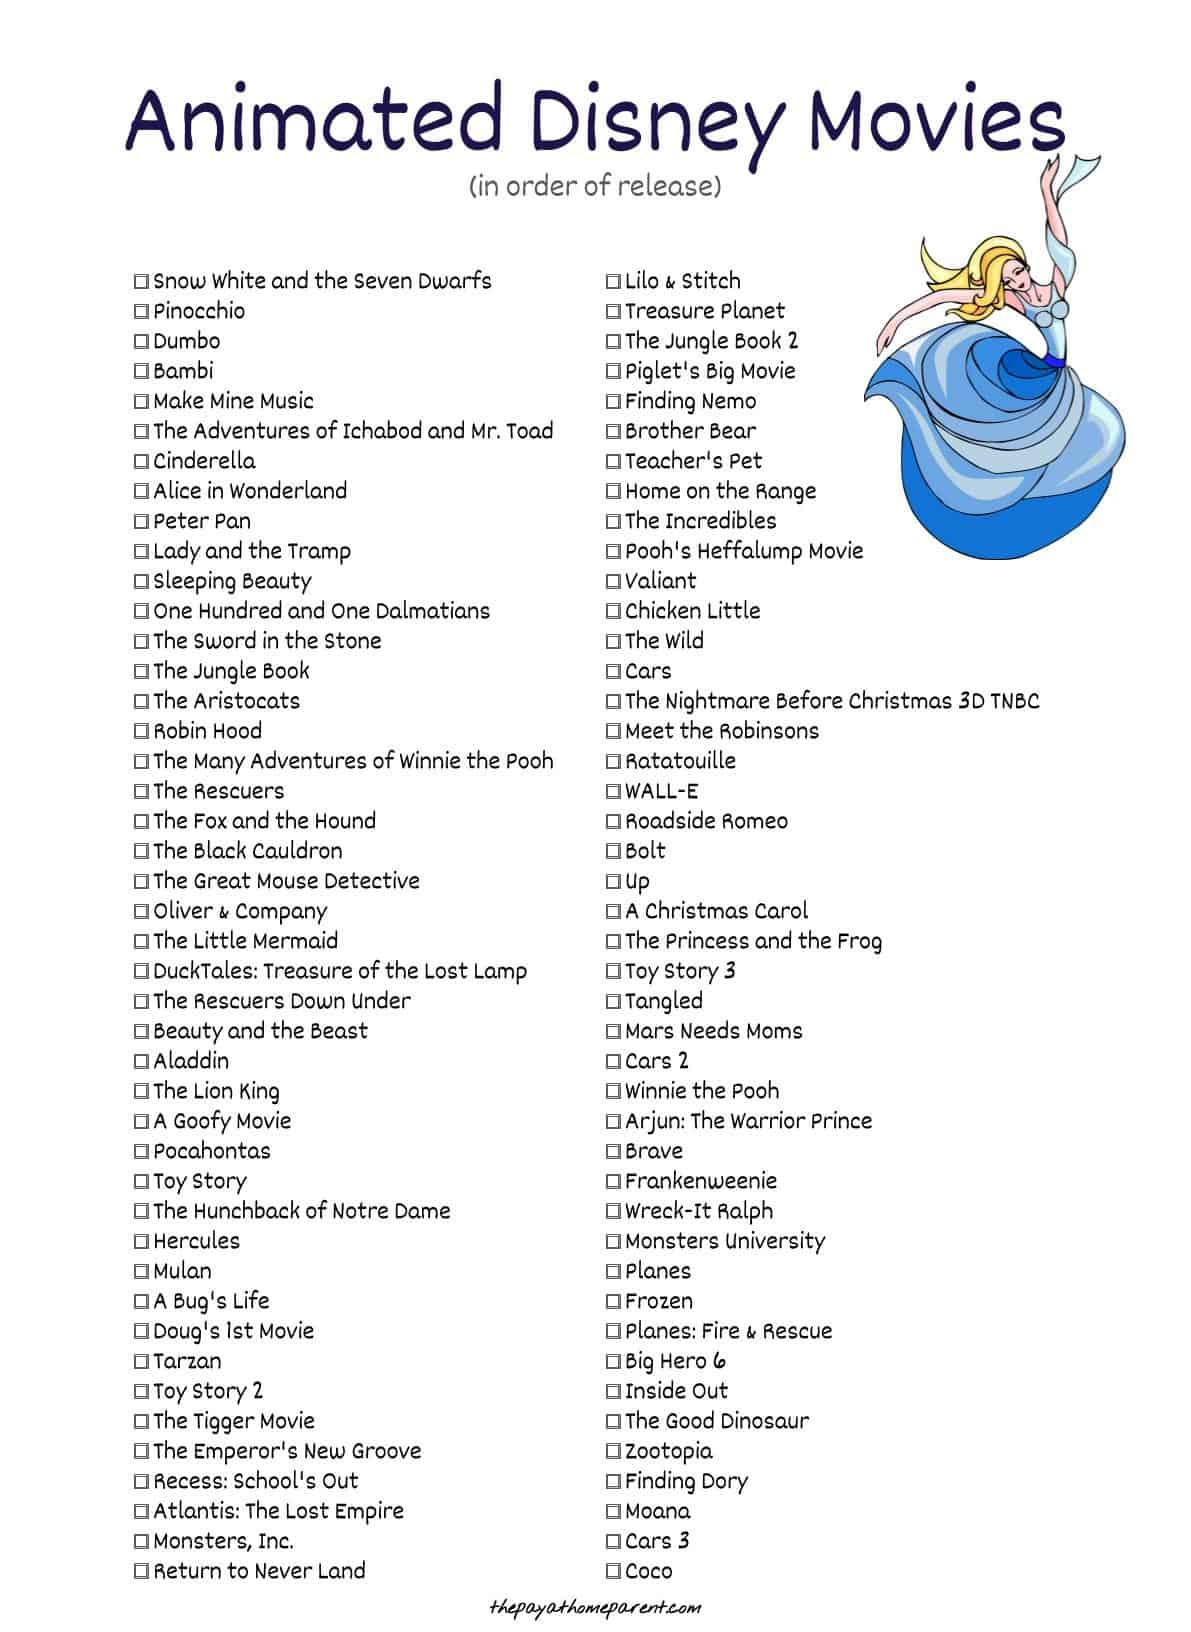 400 Disney Movies List That You Can Download [Right Now ...